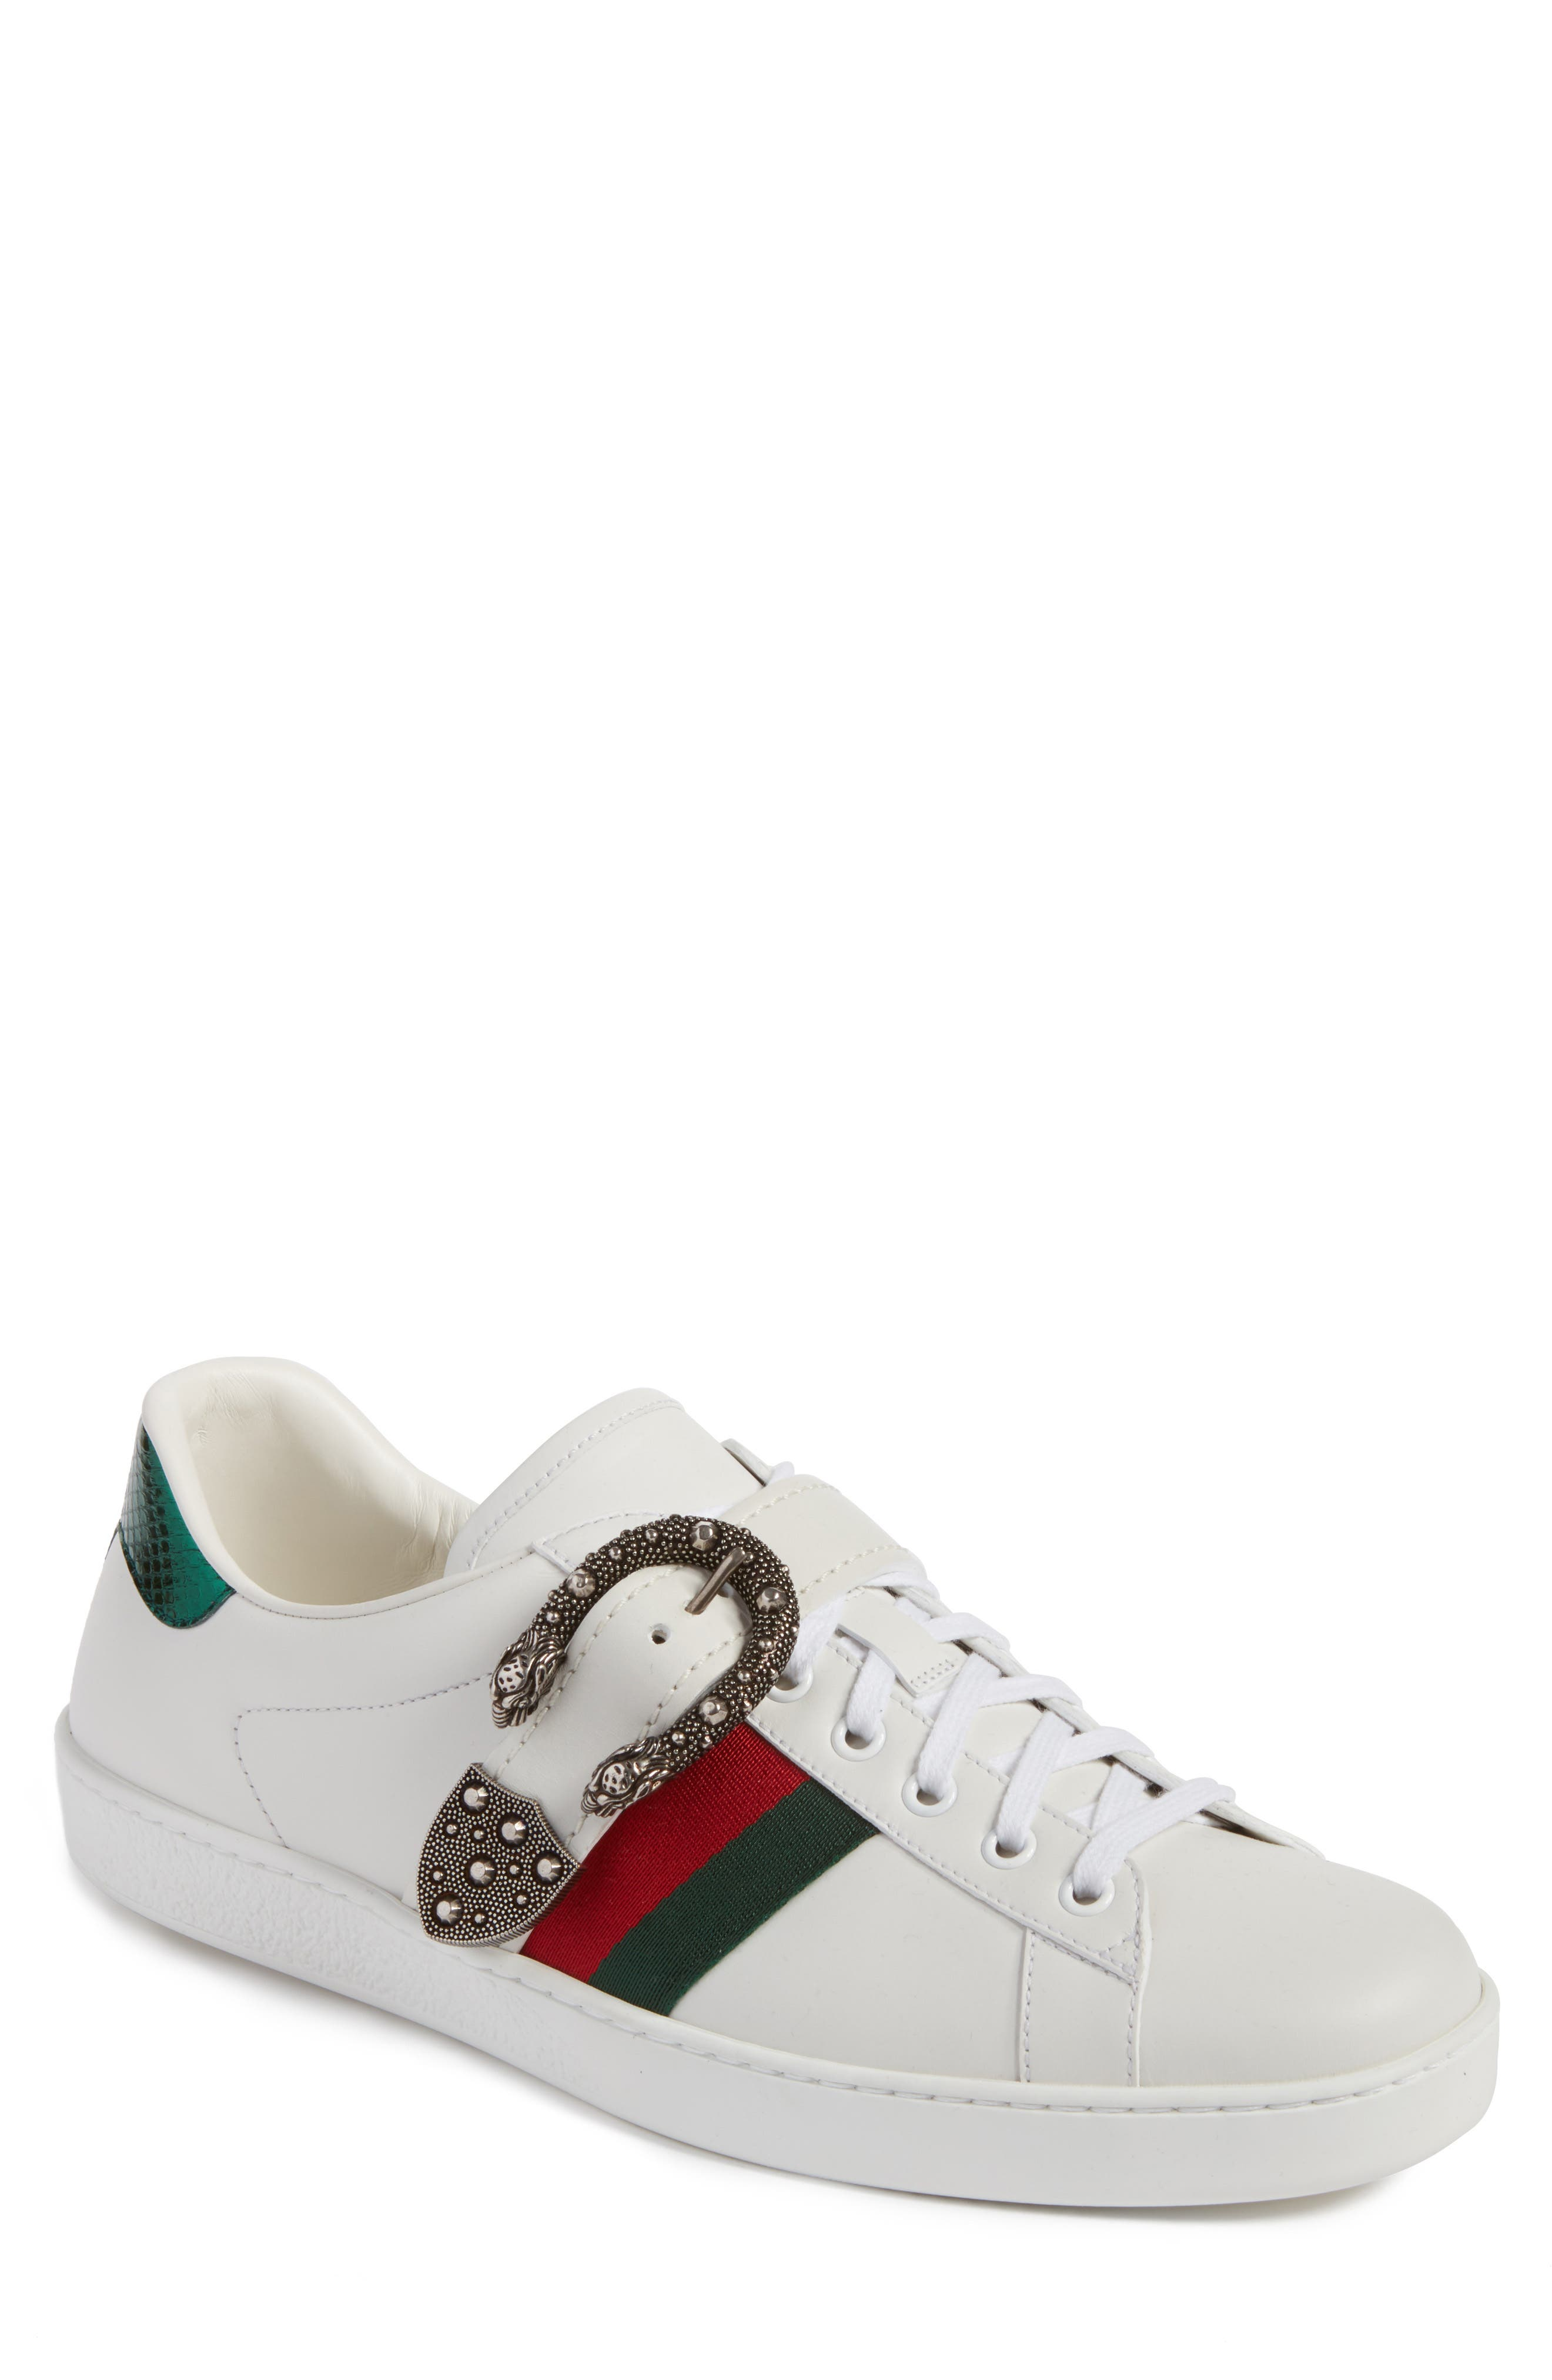 gucci shoes for men low tops. gucci new ace dionysus buckle low top sneaker (men) shoes for men tops